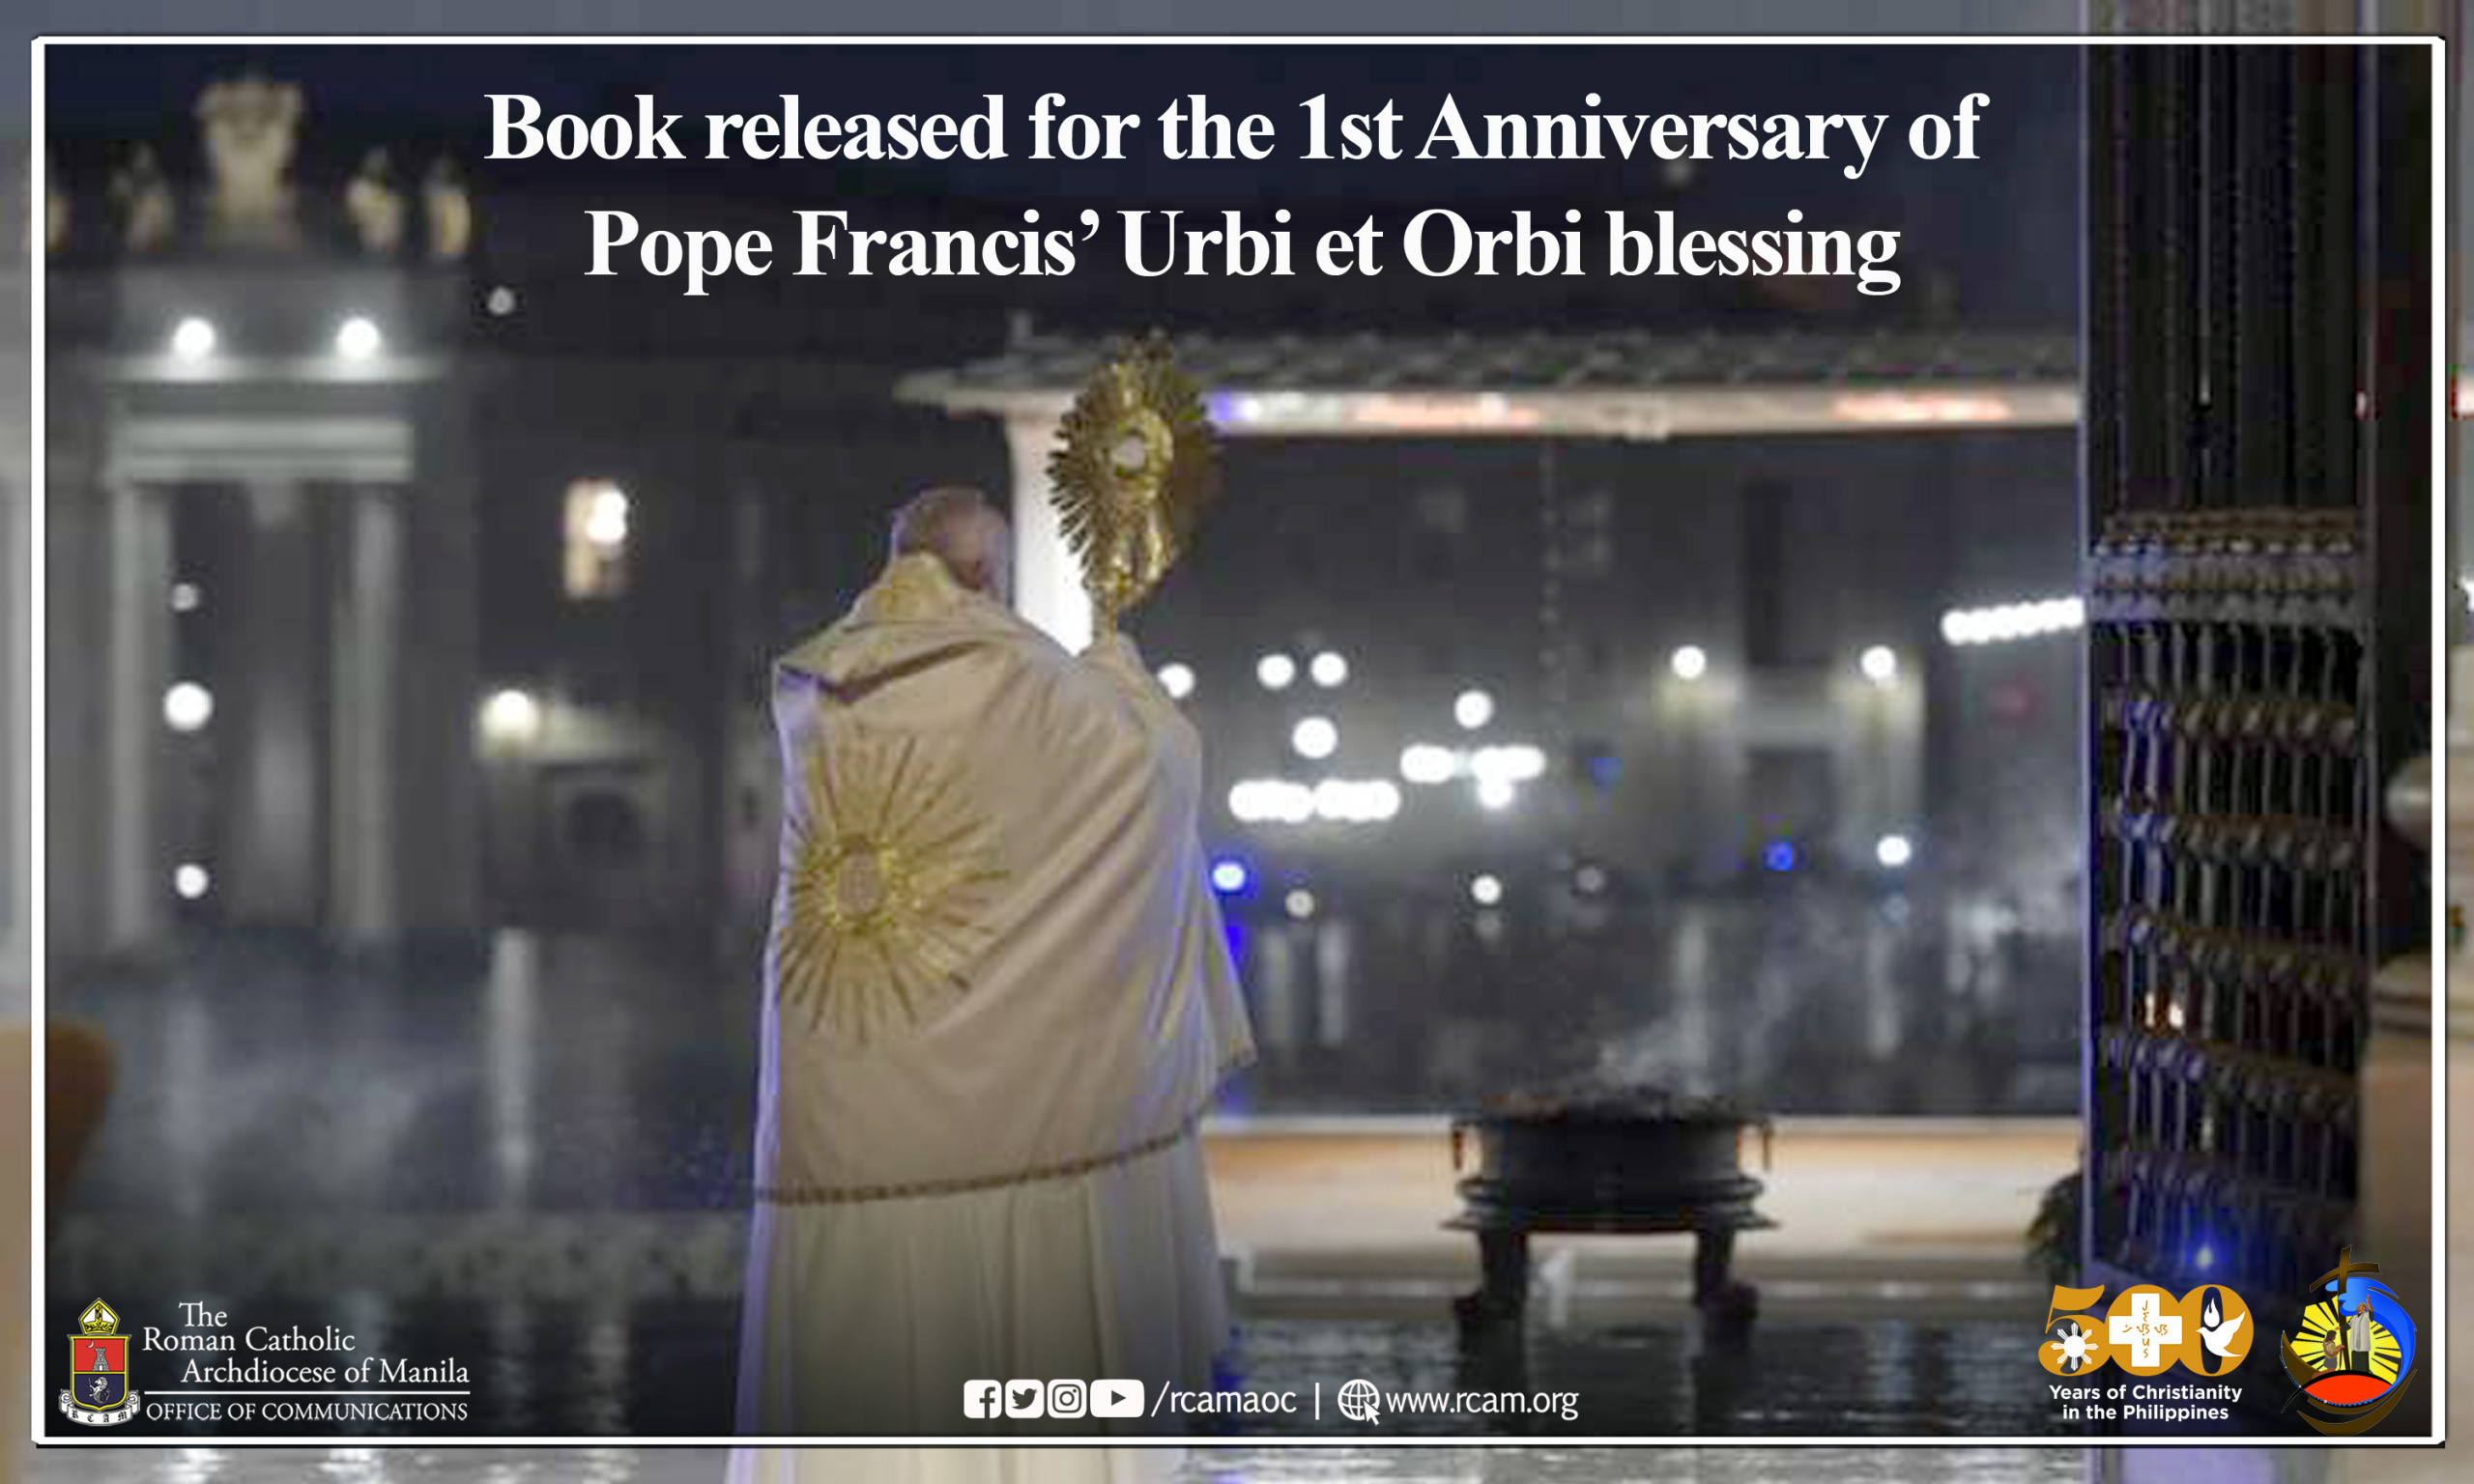 Book released for the 1st Anniversary of Pope Francis' Urbi et Orbi blessing